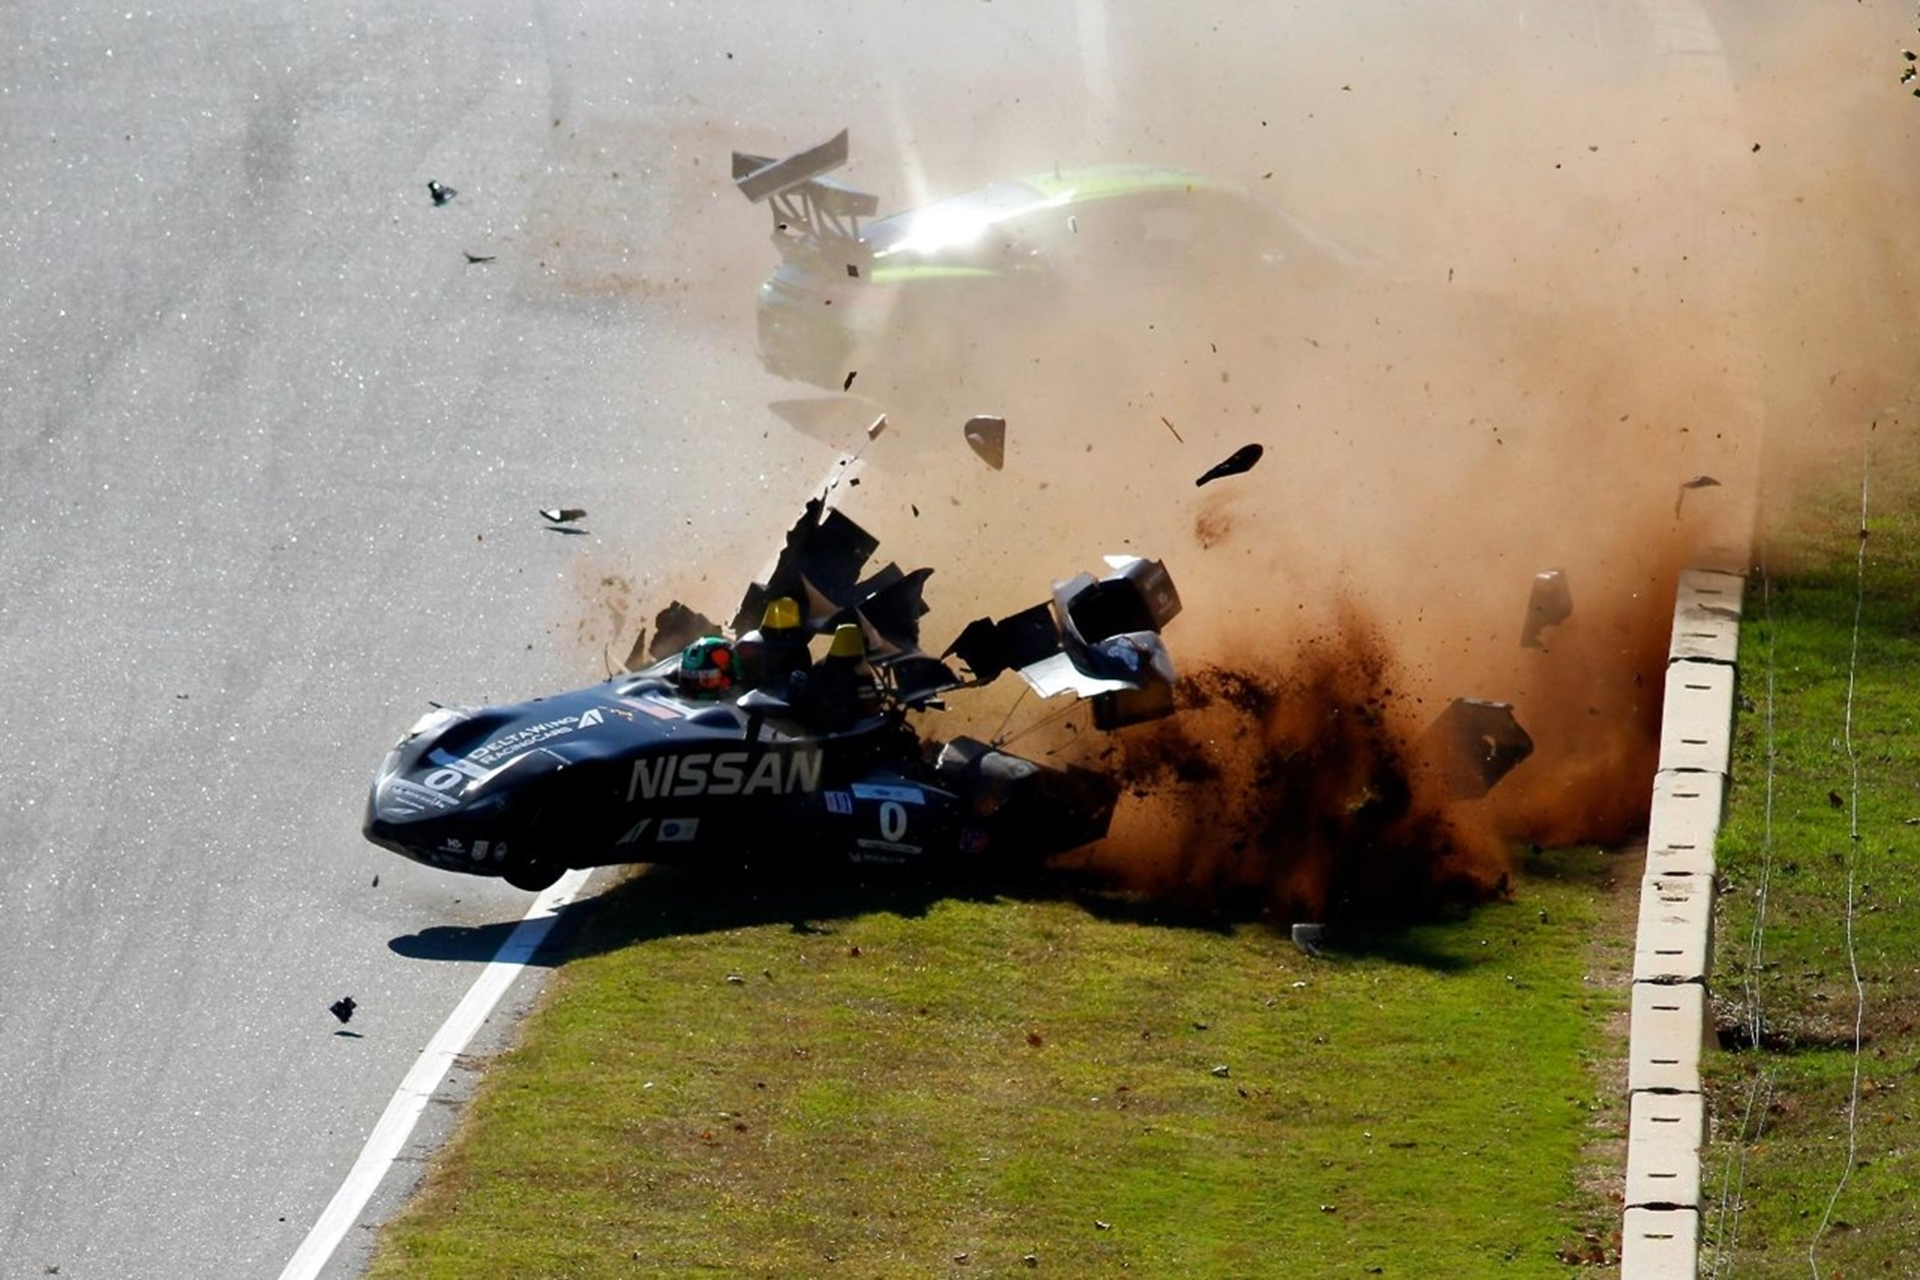 Nissan Deltawing Porche Crash